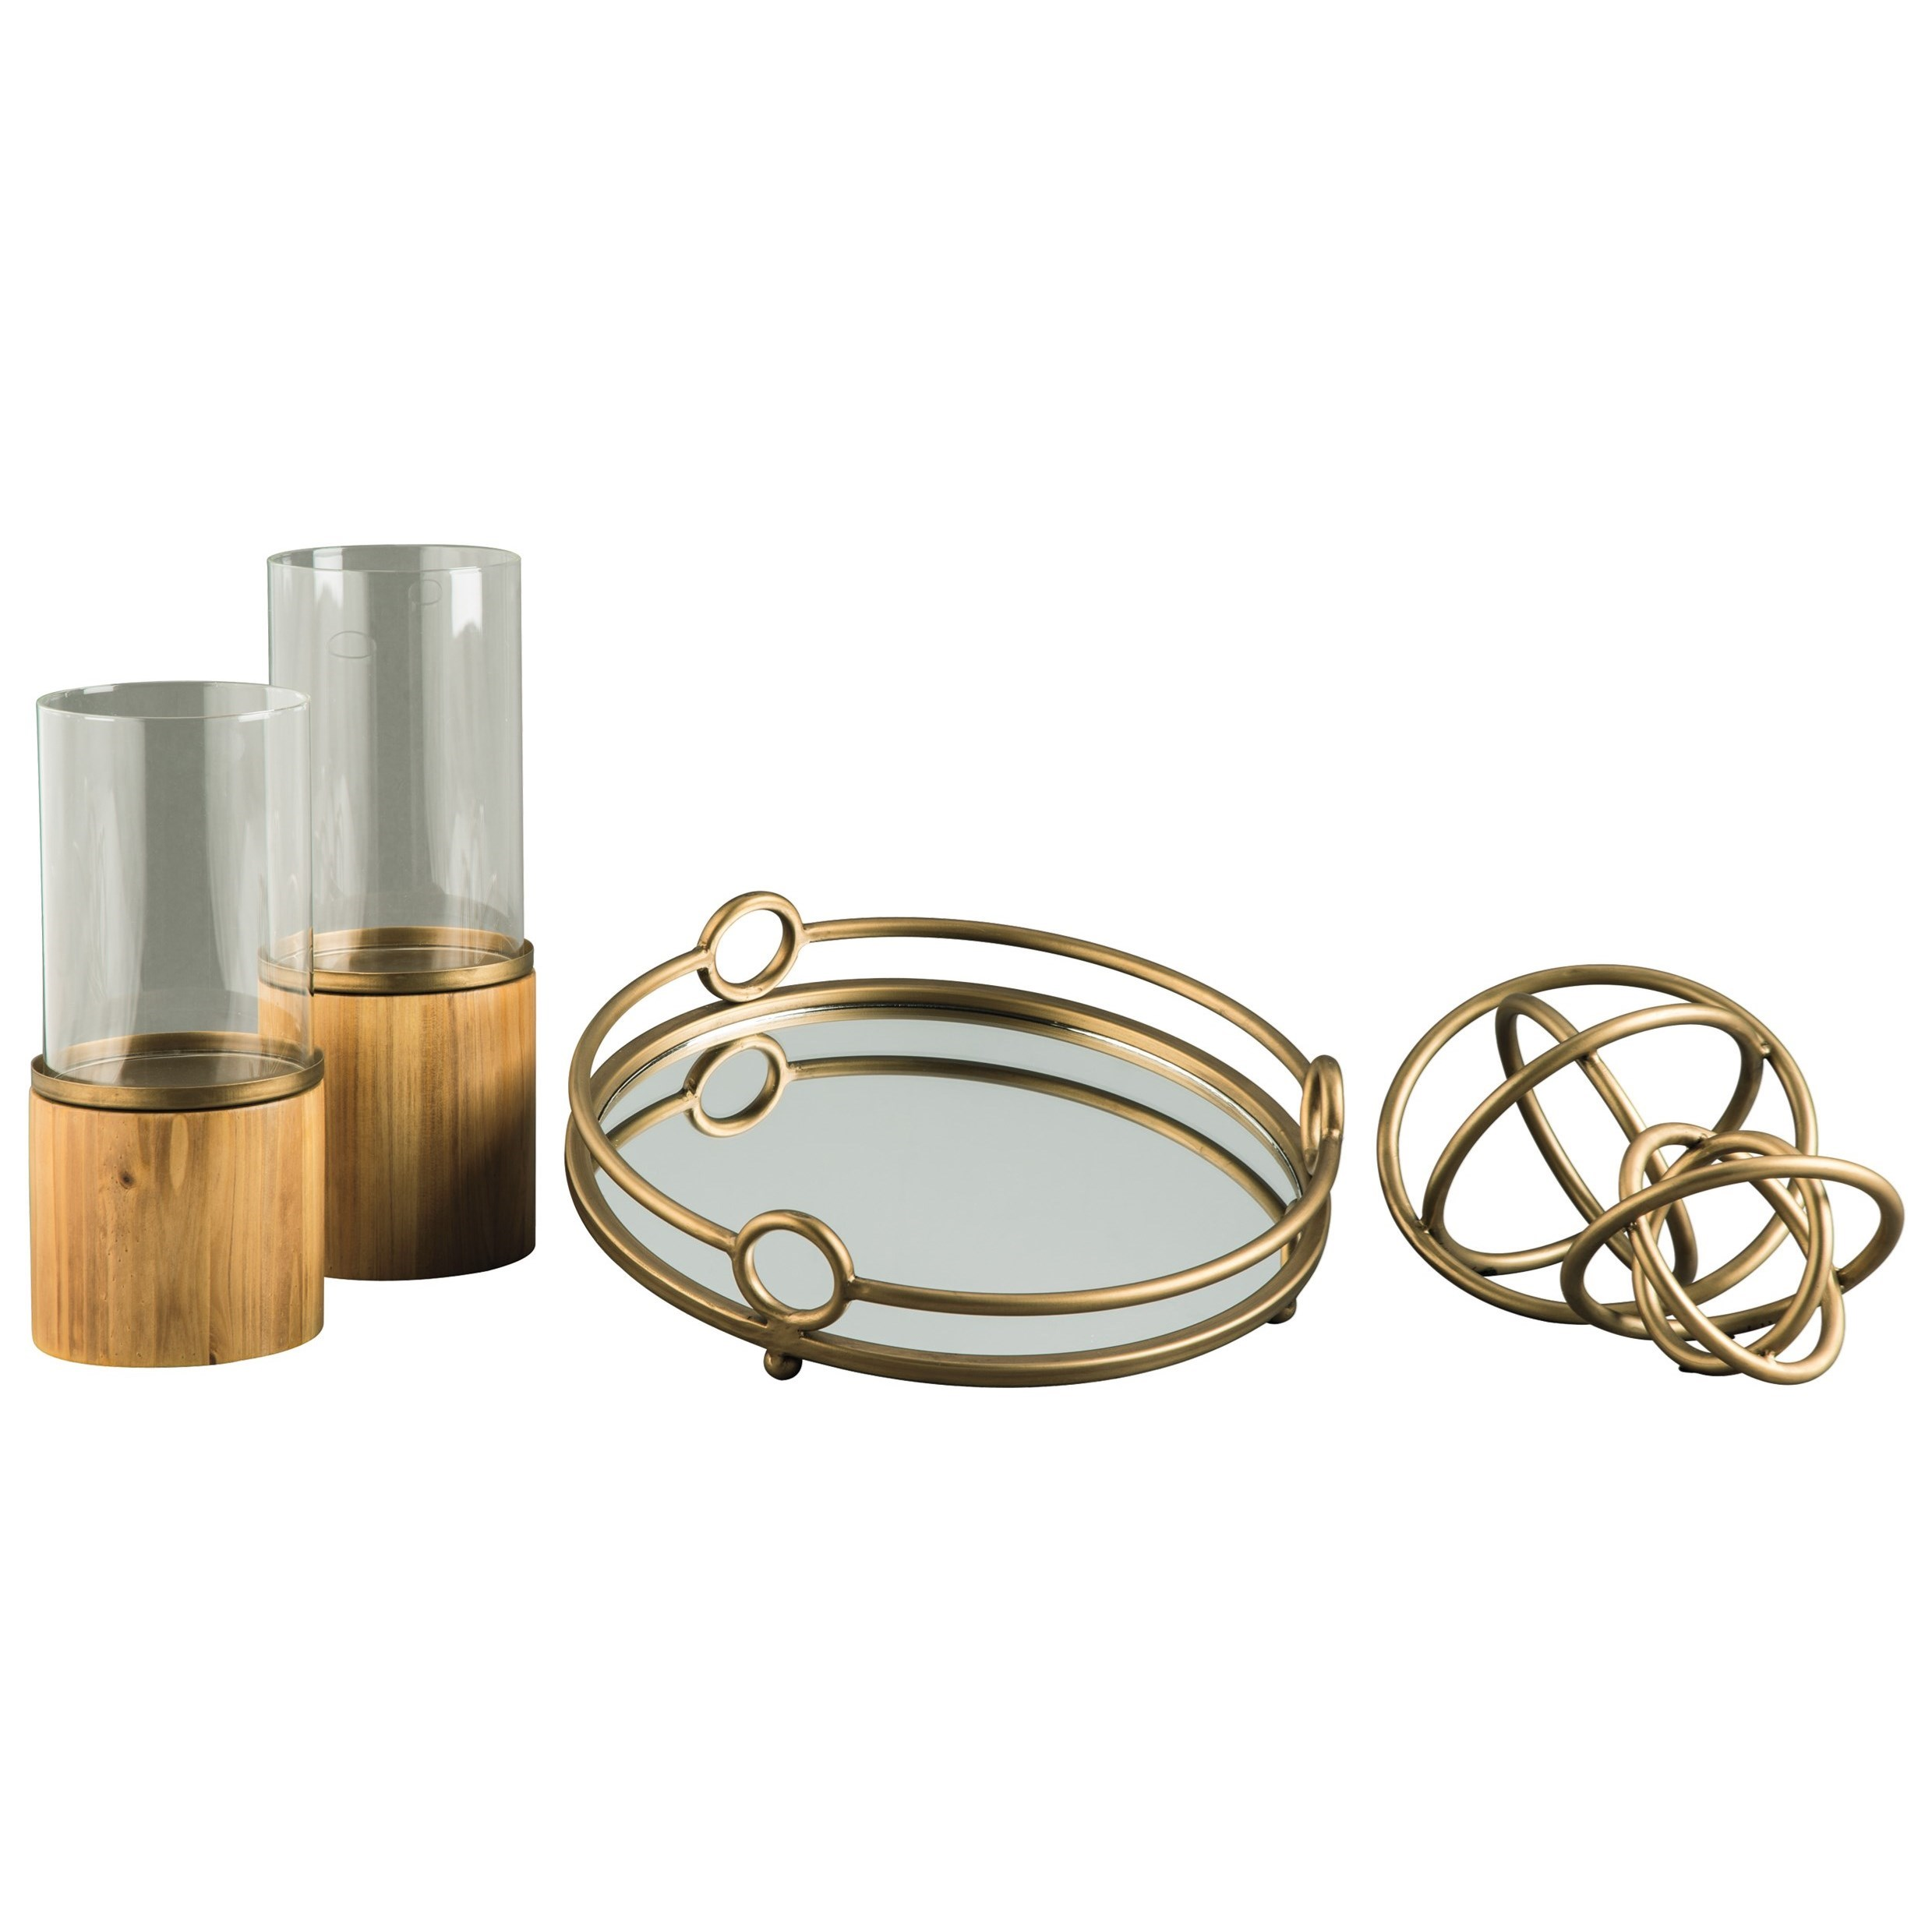 Accents Deserae Accessory Set by Ashley Furniture Signature Design at Del Sol Furniture